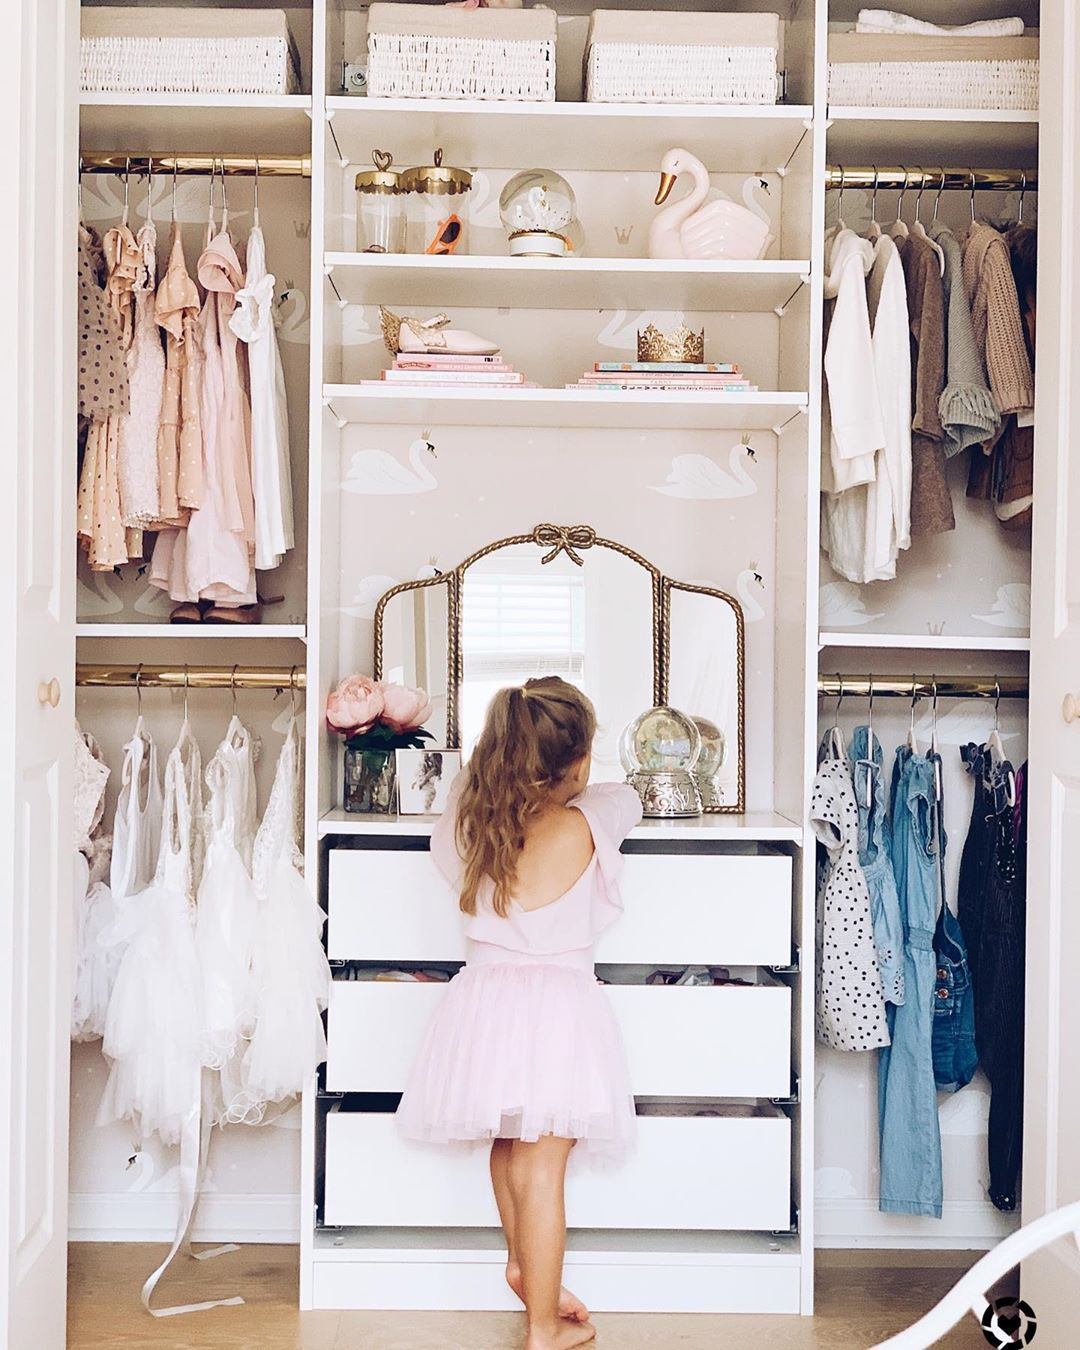 A Girl Her Closet The Other Day She Told Me She